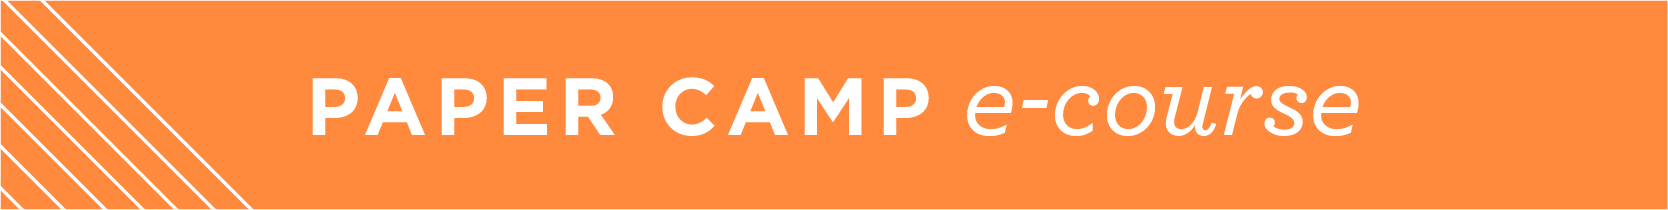 PaperCamp_E-Course.png